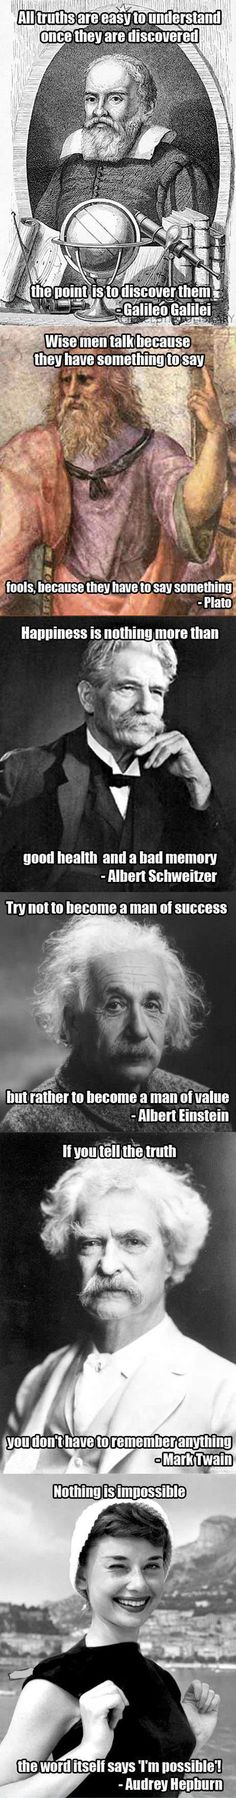 Good quotes by great minds�